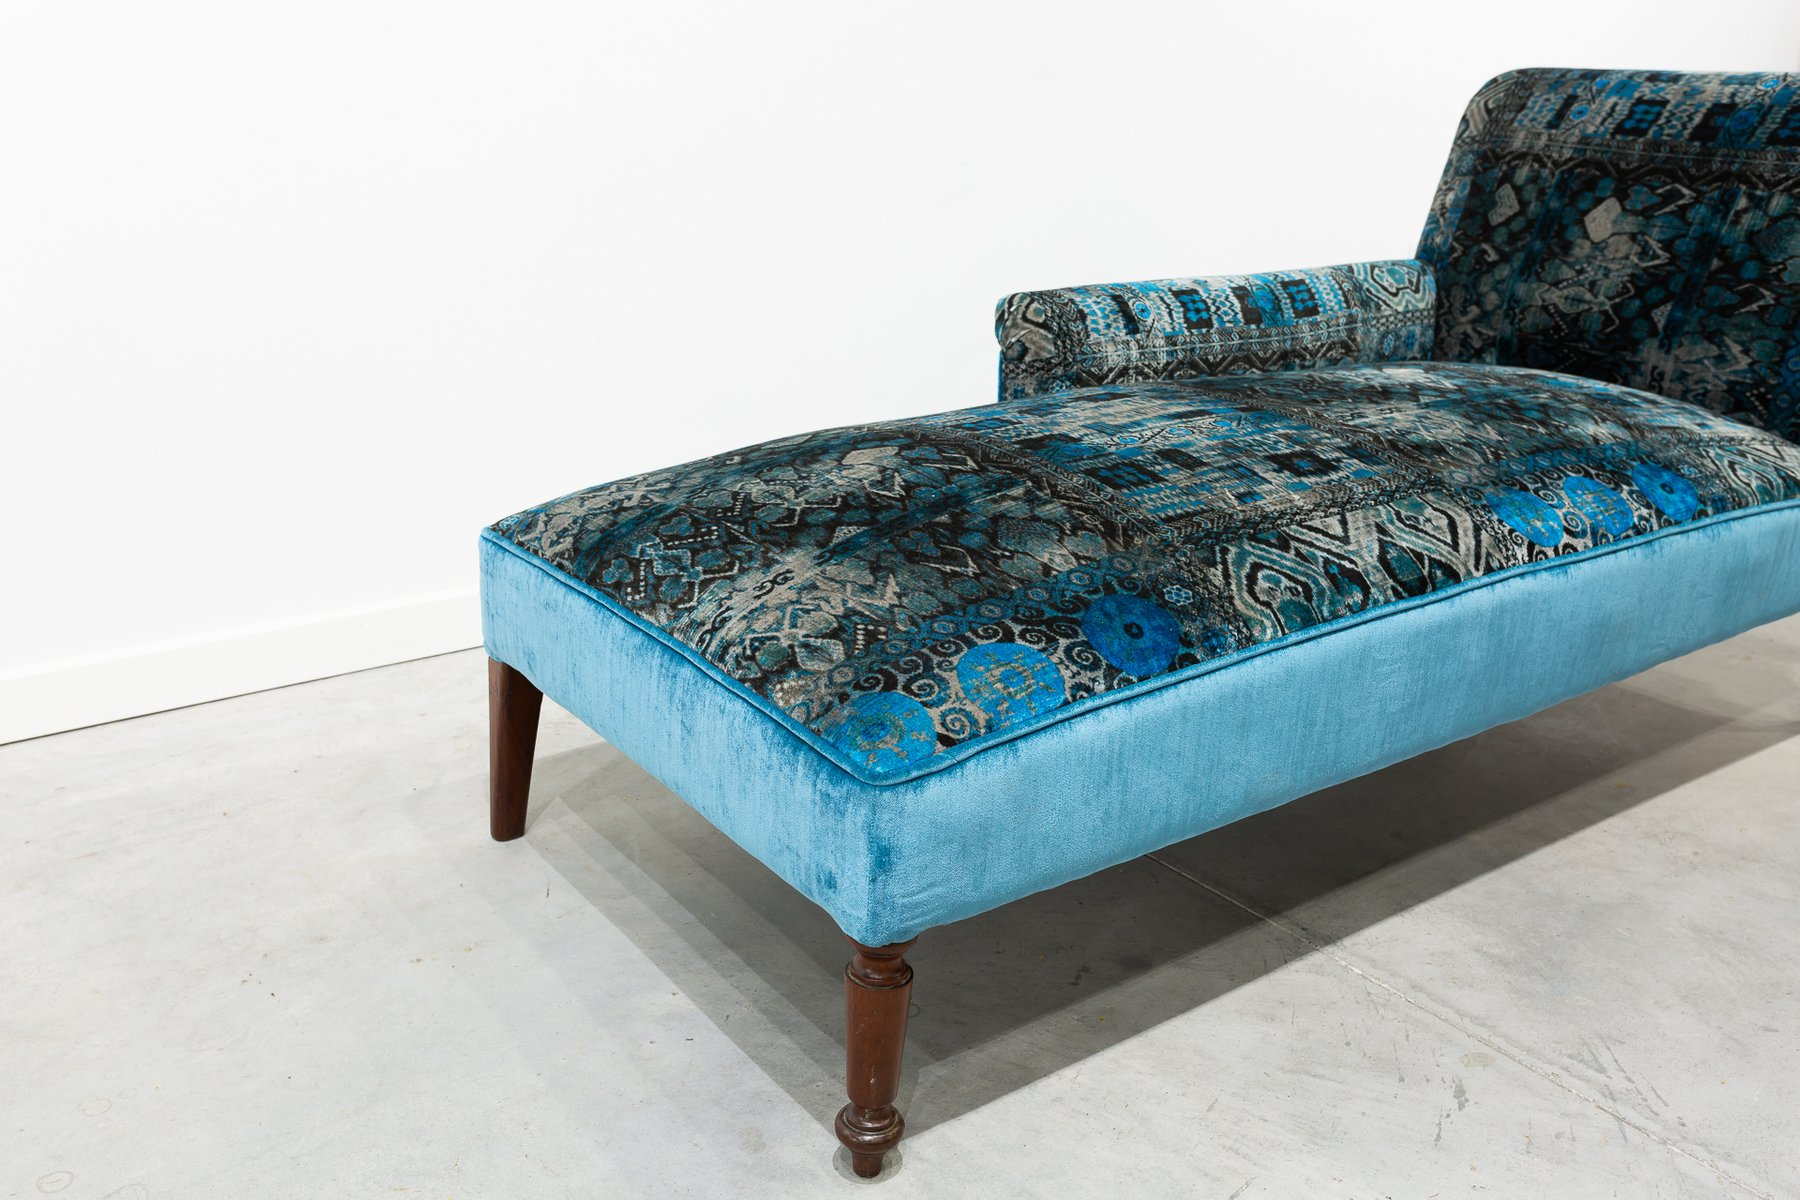 Antique Blue Velvet Chaise Lounge For Sale At Pamono